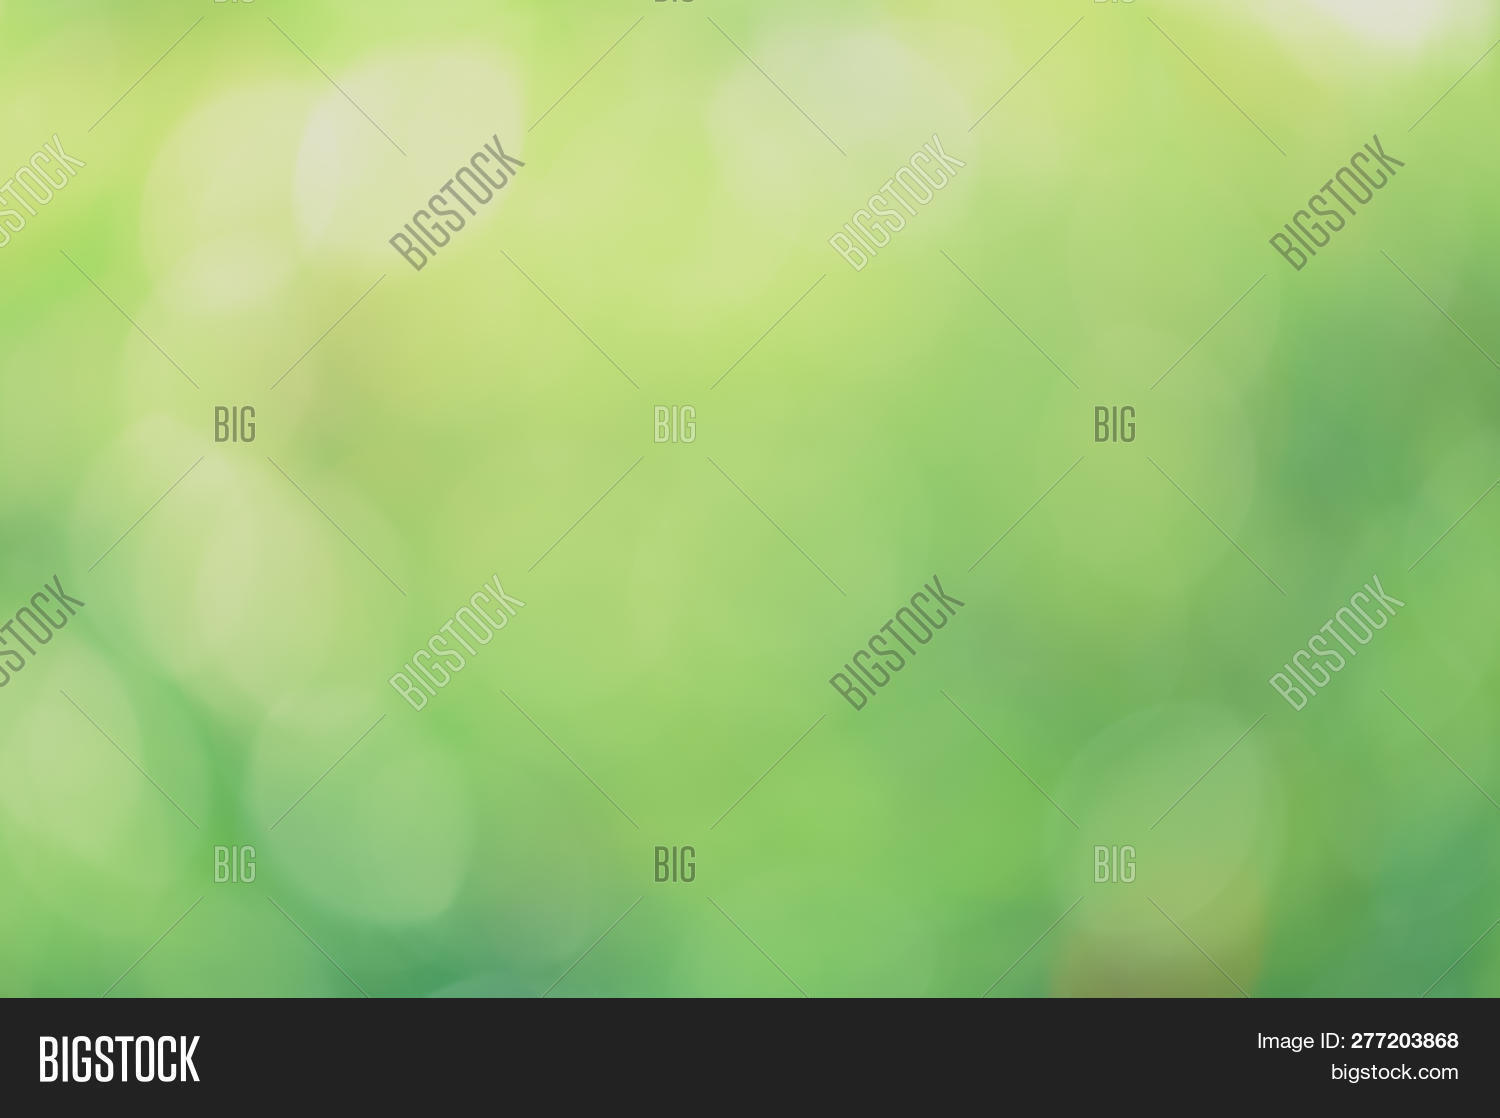 abstract,backdrop,background,beautiful,blur,blurred,blurry,bokeh,bright,bubble,circle,color,colorful,day,decorative,defocus,defocused,design,ecology,effect,focus,foliage,fresh,freshness,garden,glitter,glow,glowing,green,greenery,leaf,light,lush,natural,nature,pattern,plant,round,season,shine,shiny,soft,sparkle,spring,summer,sun,sunlight,sunny,texture,twinkle